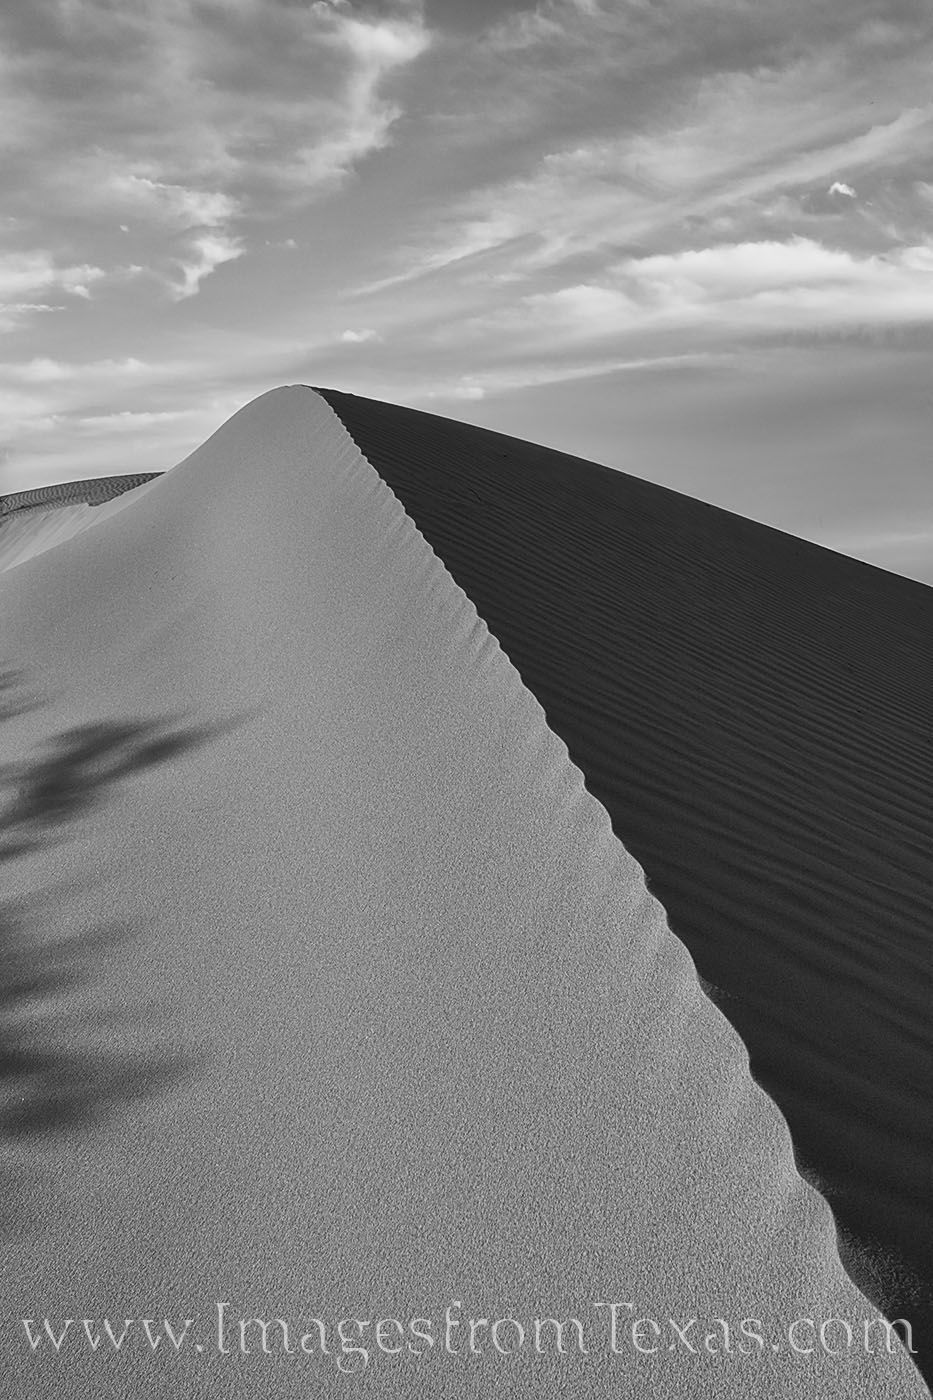 Monahans, sand dunes, sandhills, sand, west texas, sunset, evening, black and white, contrast, light, photo